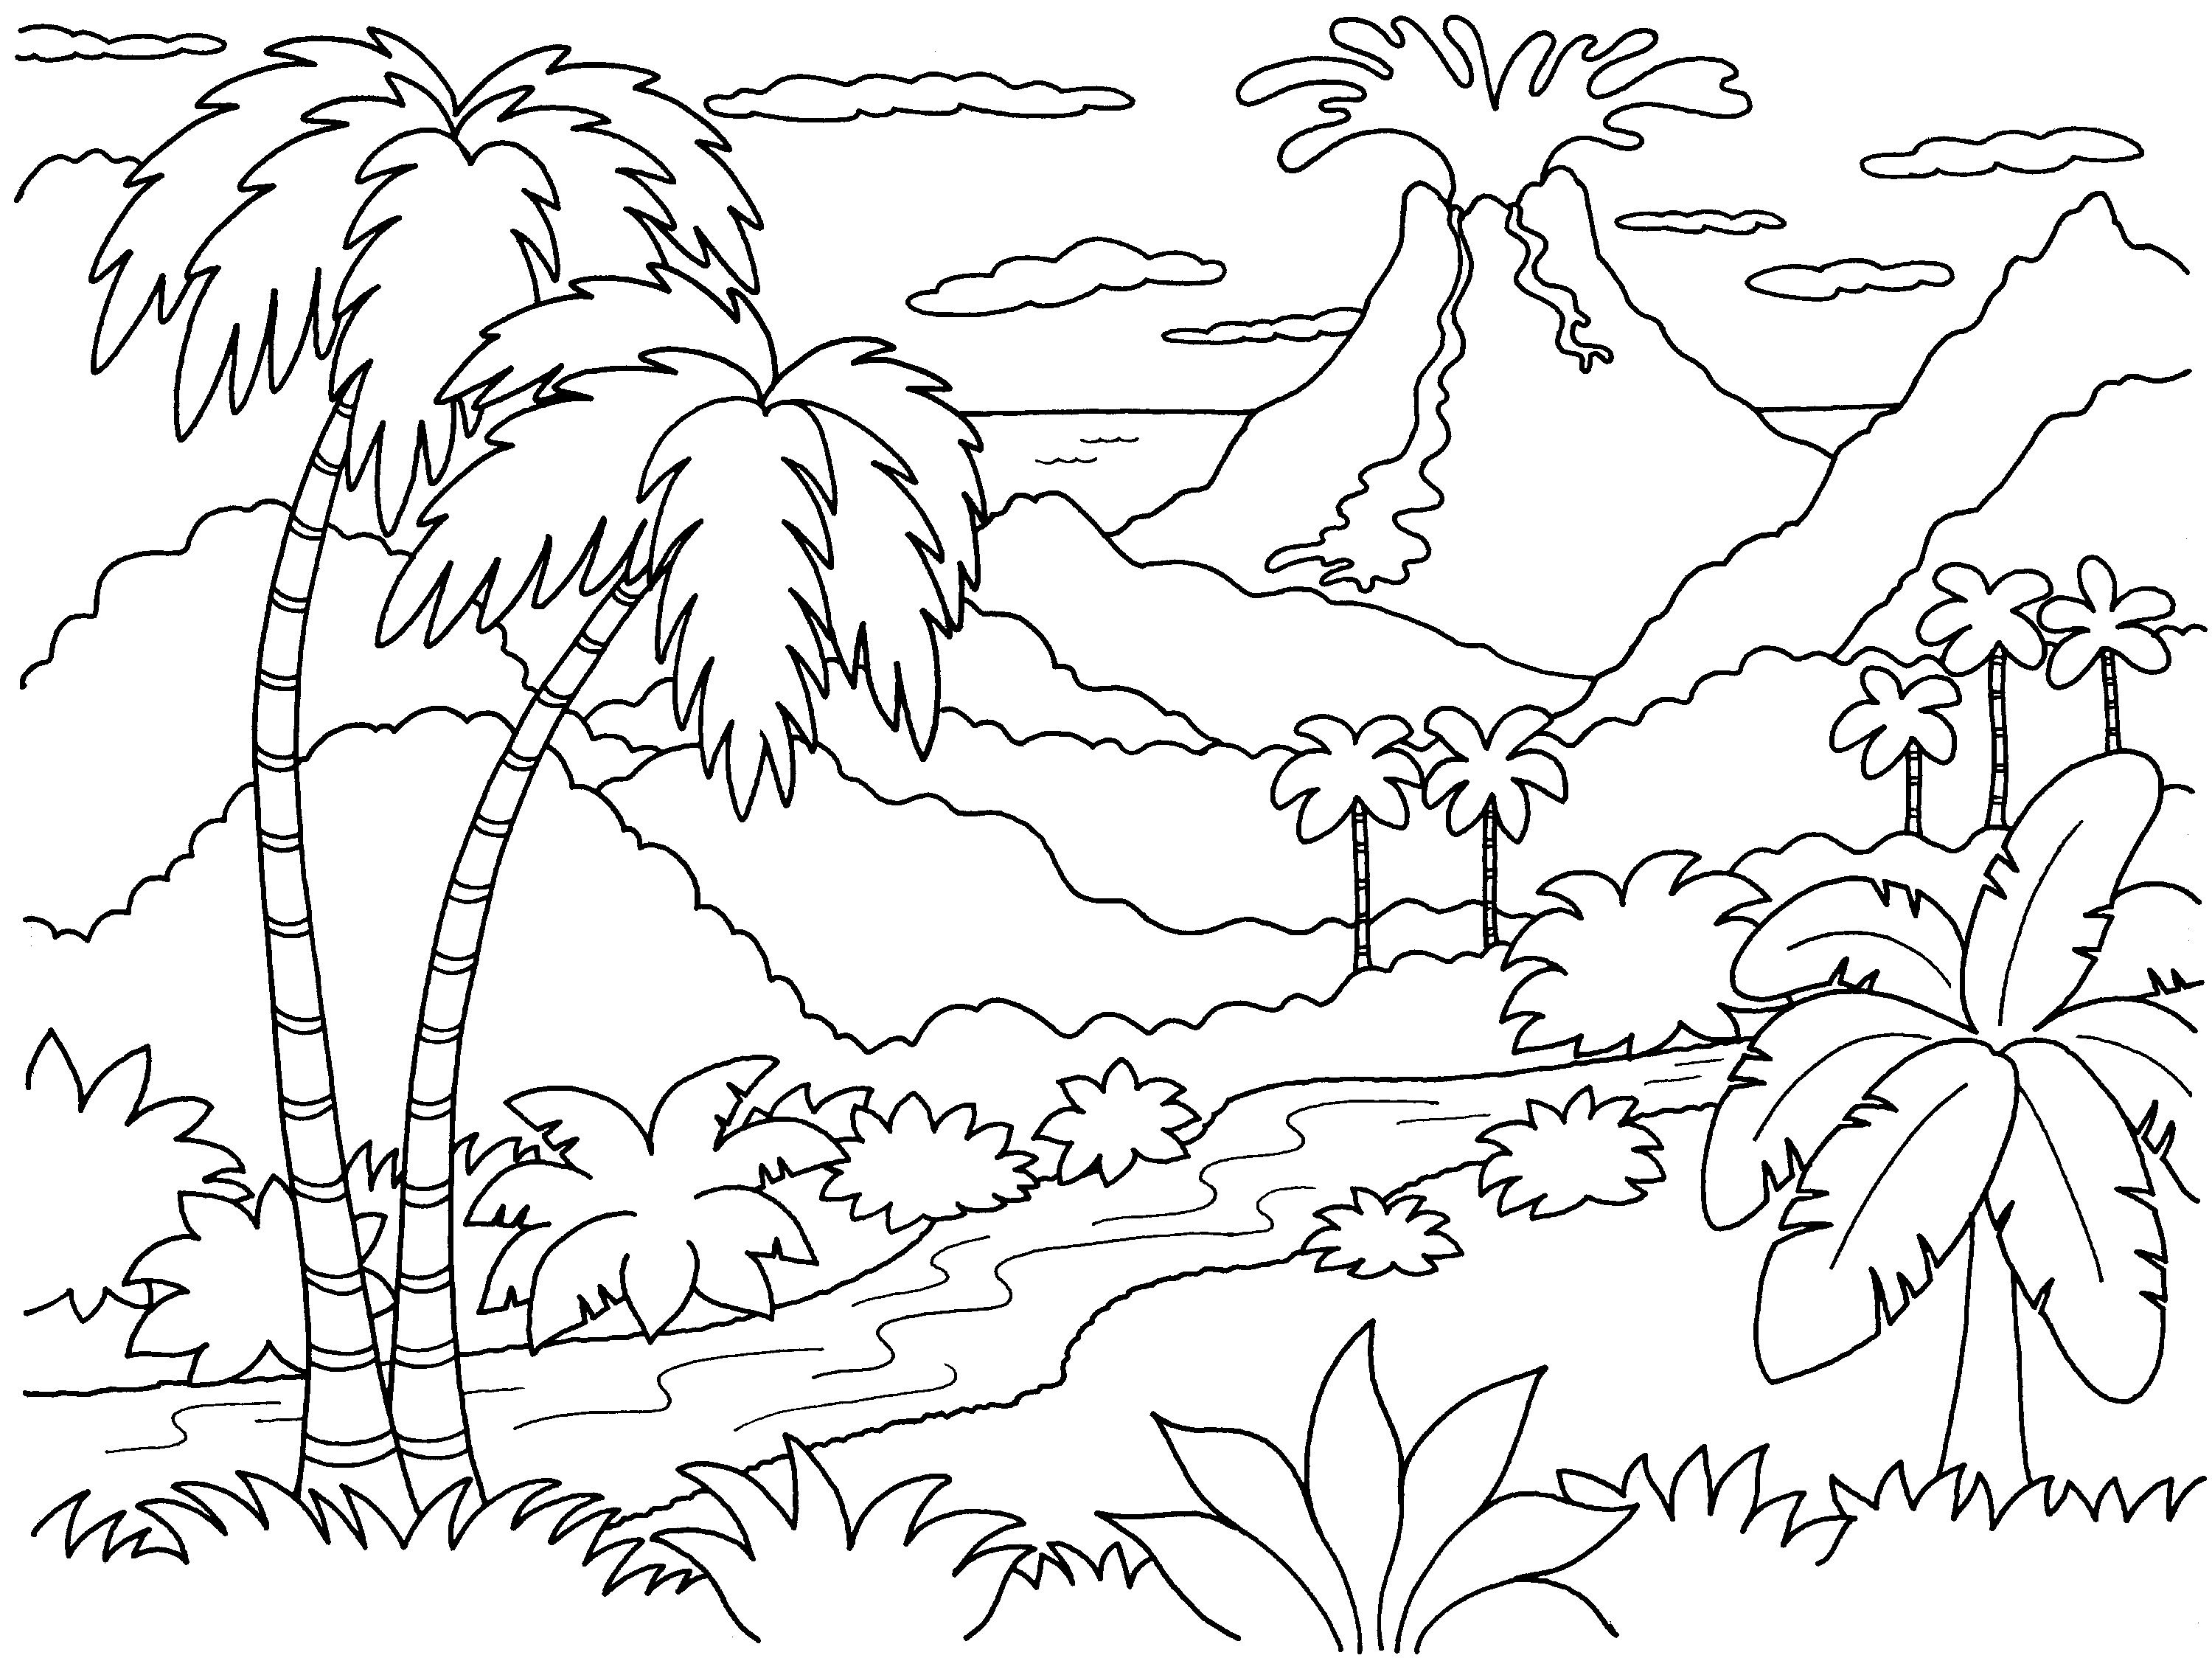 Real looking dinosaur coloring pages - Nature Island Coloring Pages Print Coloring Pages Best Island